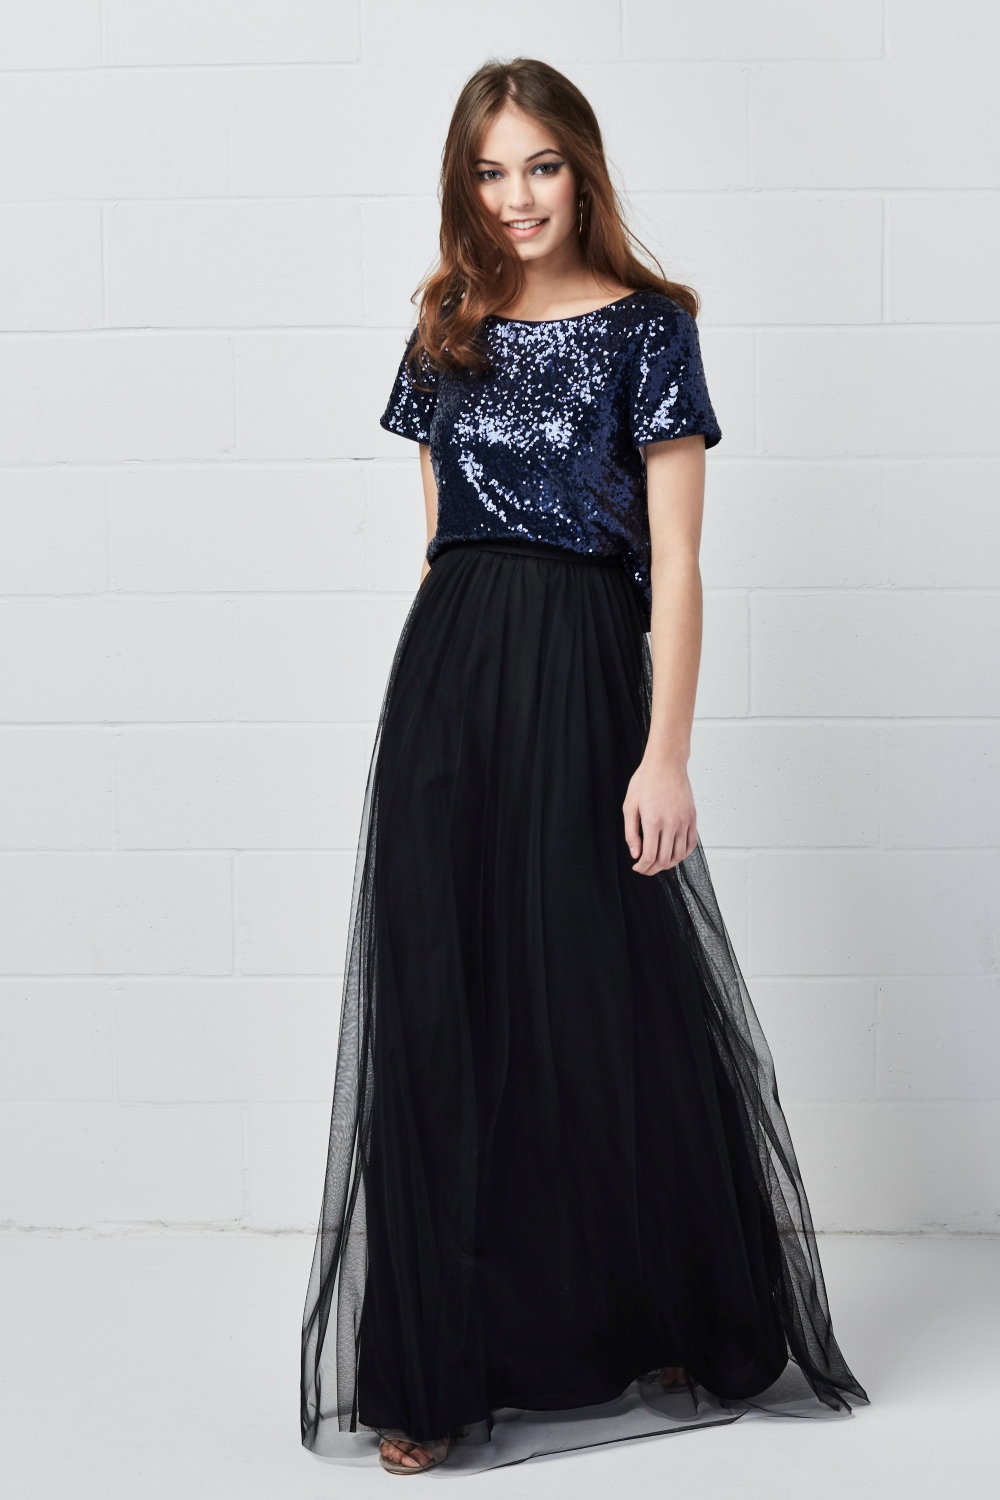 sequin-bridesmaid-dress-for-winter-weddings